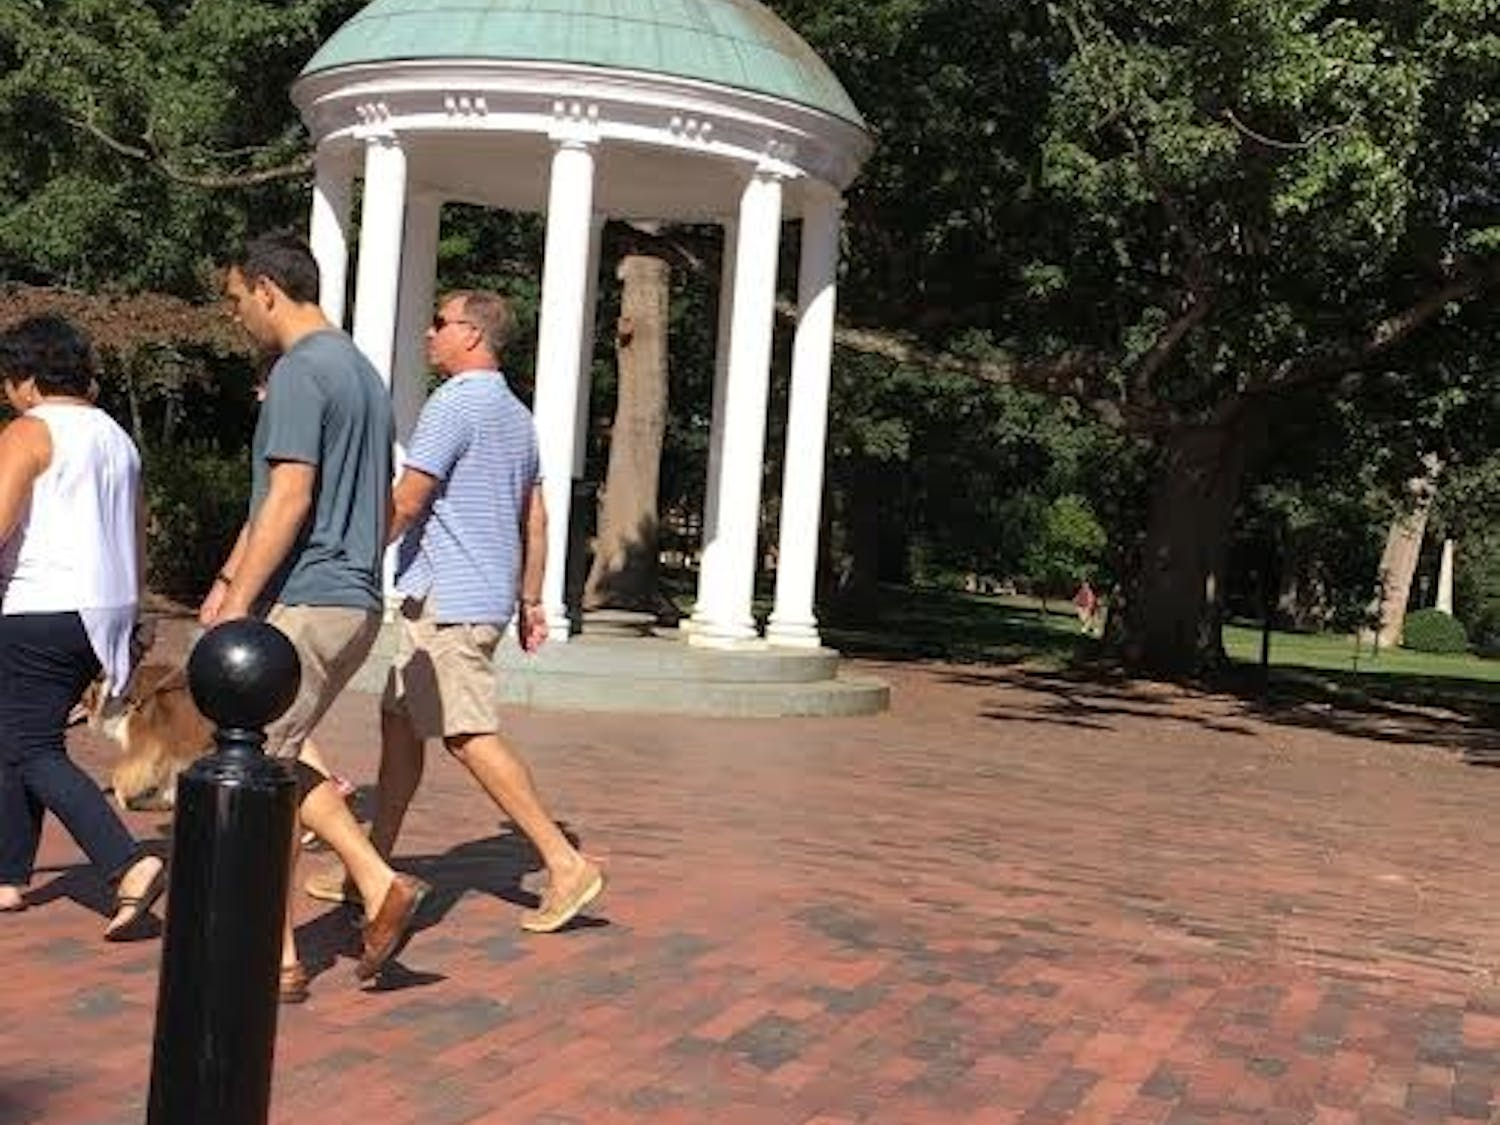 UNC has 30 snapchat filters scattered around campus.